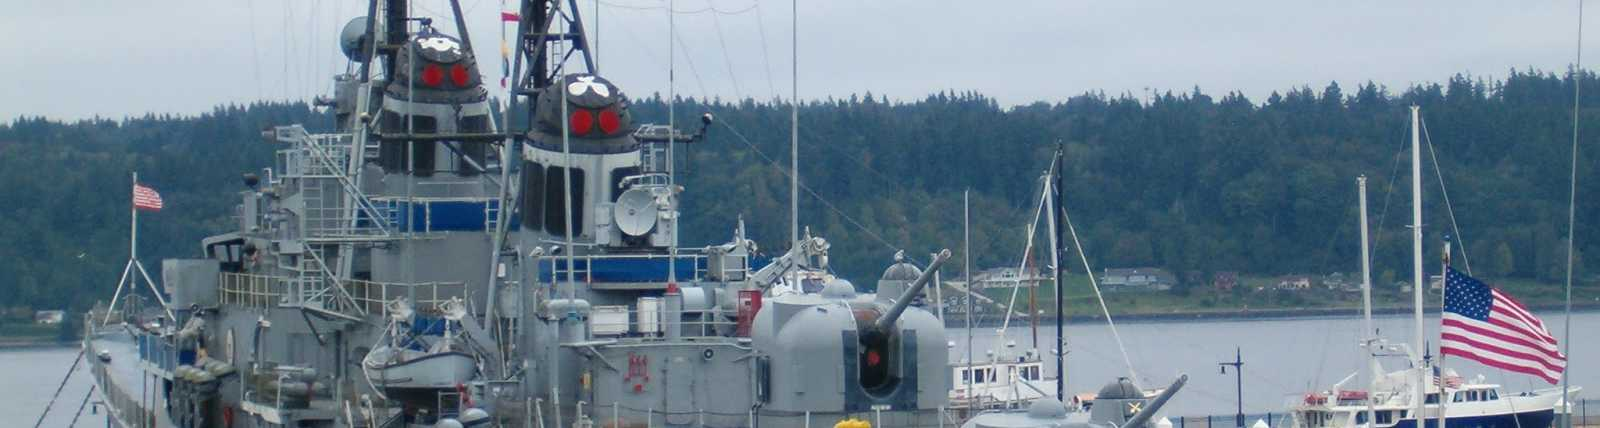 USS Turner Joy/Bremerton Historic Ship Association